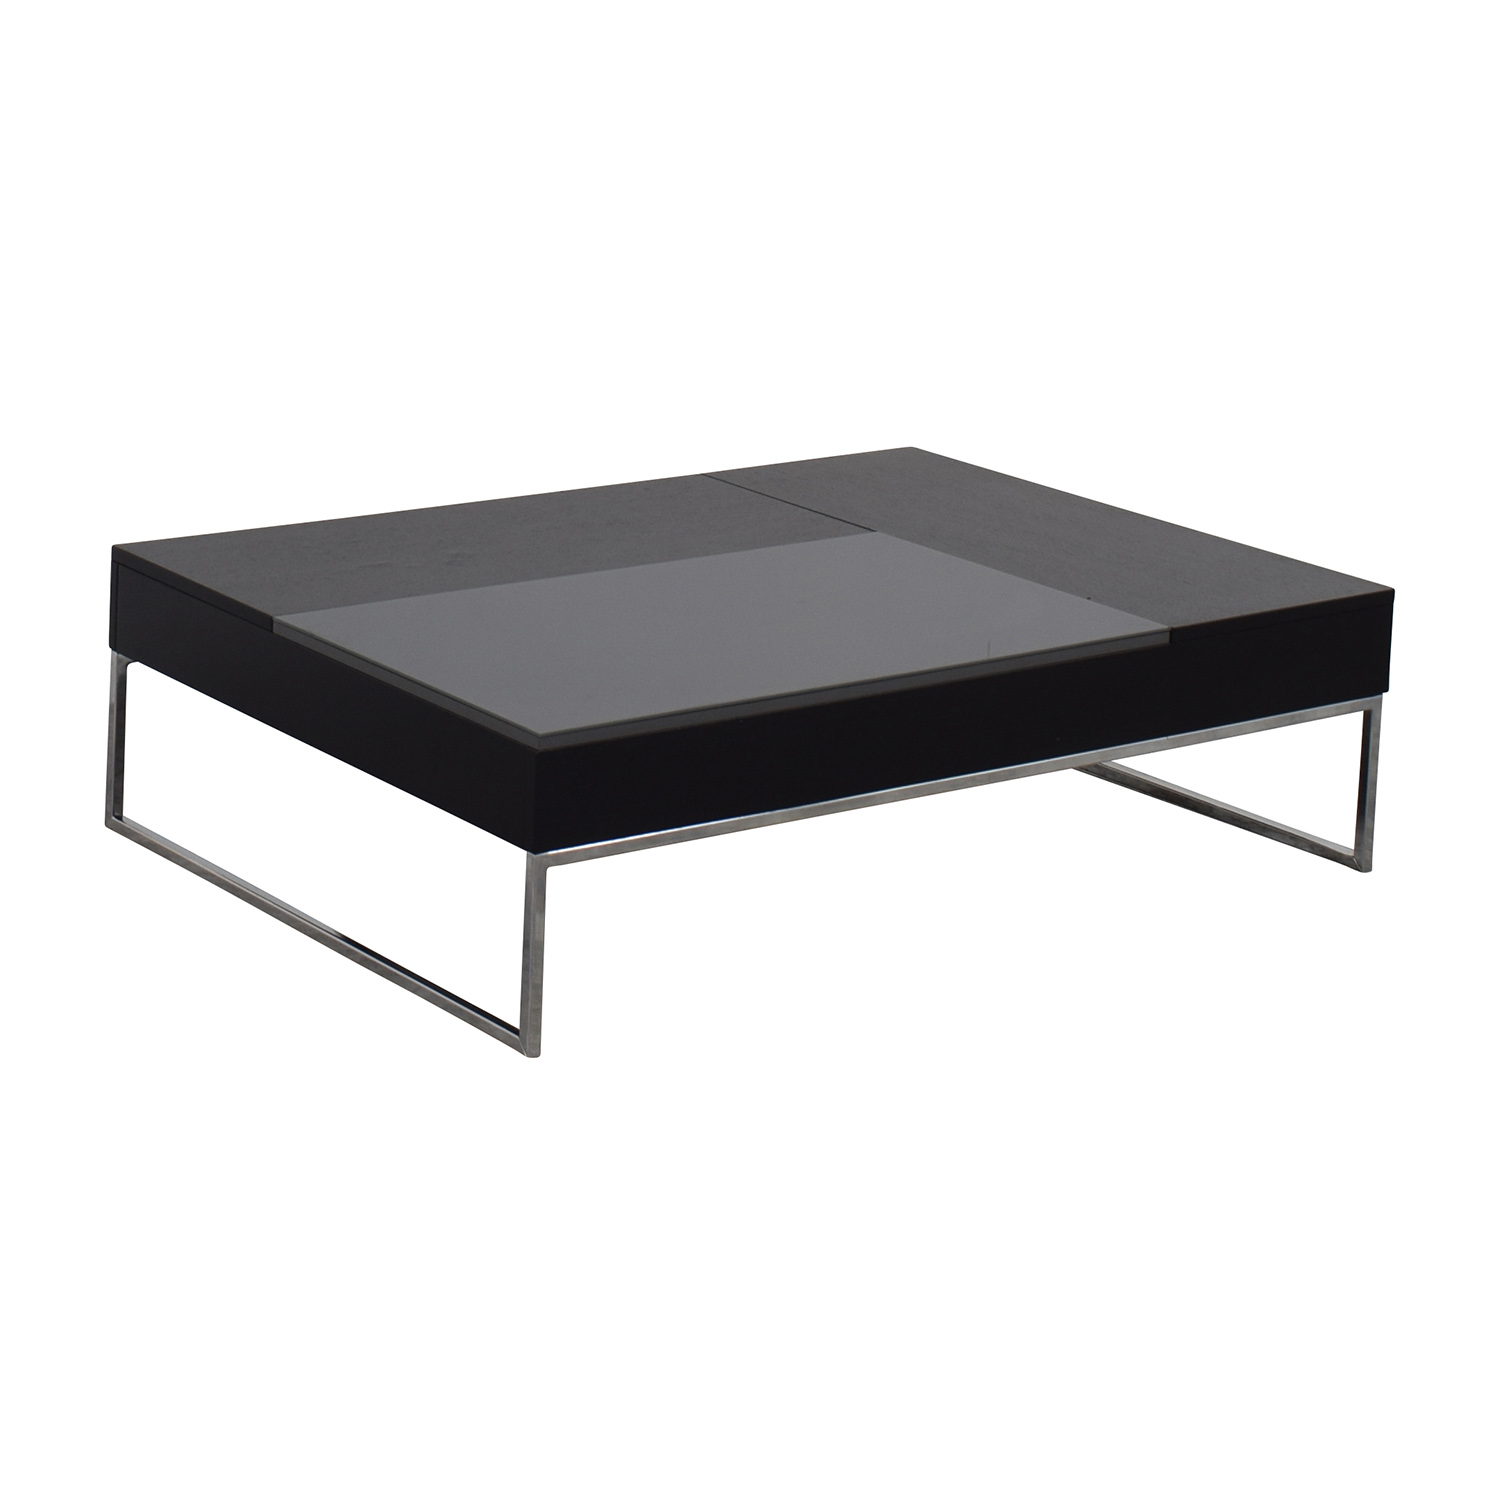 OFF BoConcept BoConcept Chiva Storage Coffee Table Tables